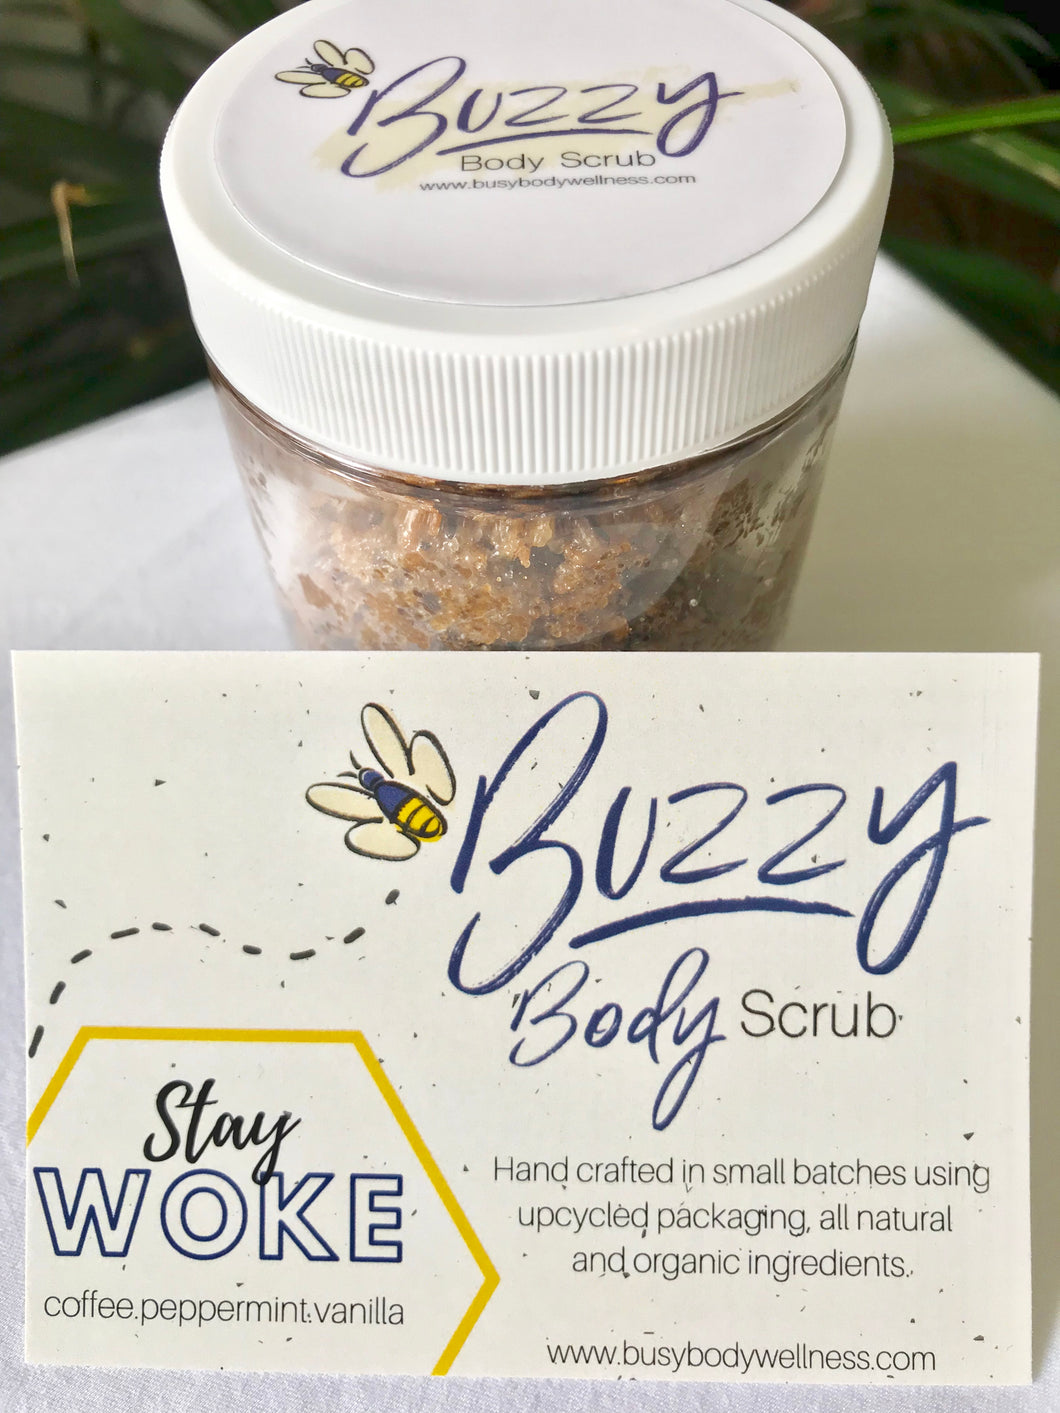 Coffee and Peppermint 'Stay Woke' Body Scrub